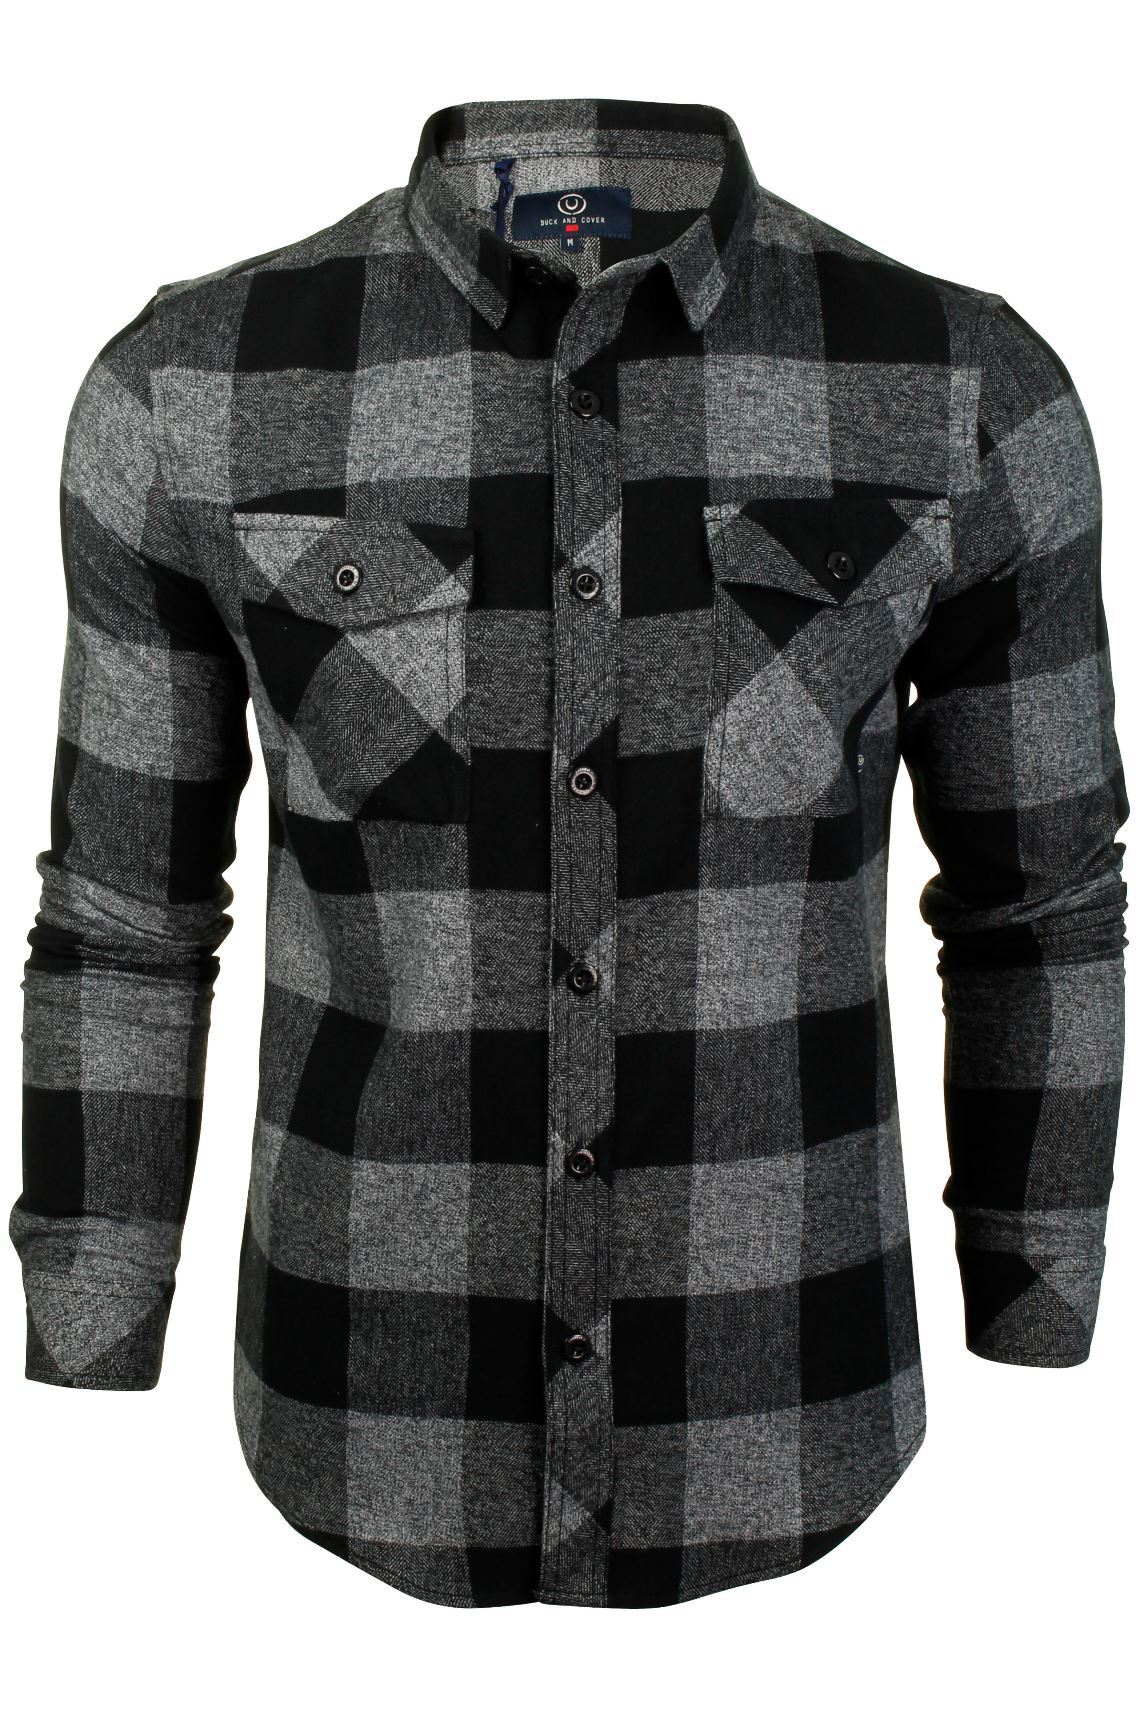 Mens Flannel Check Shirt by Duck and Cover 'Chapman'-2